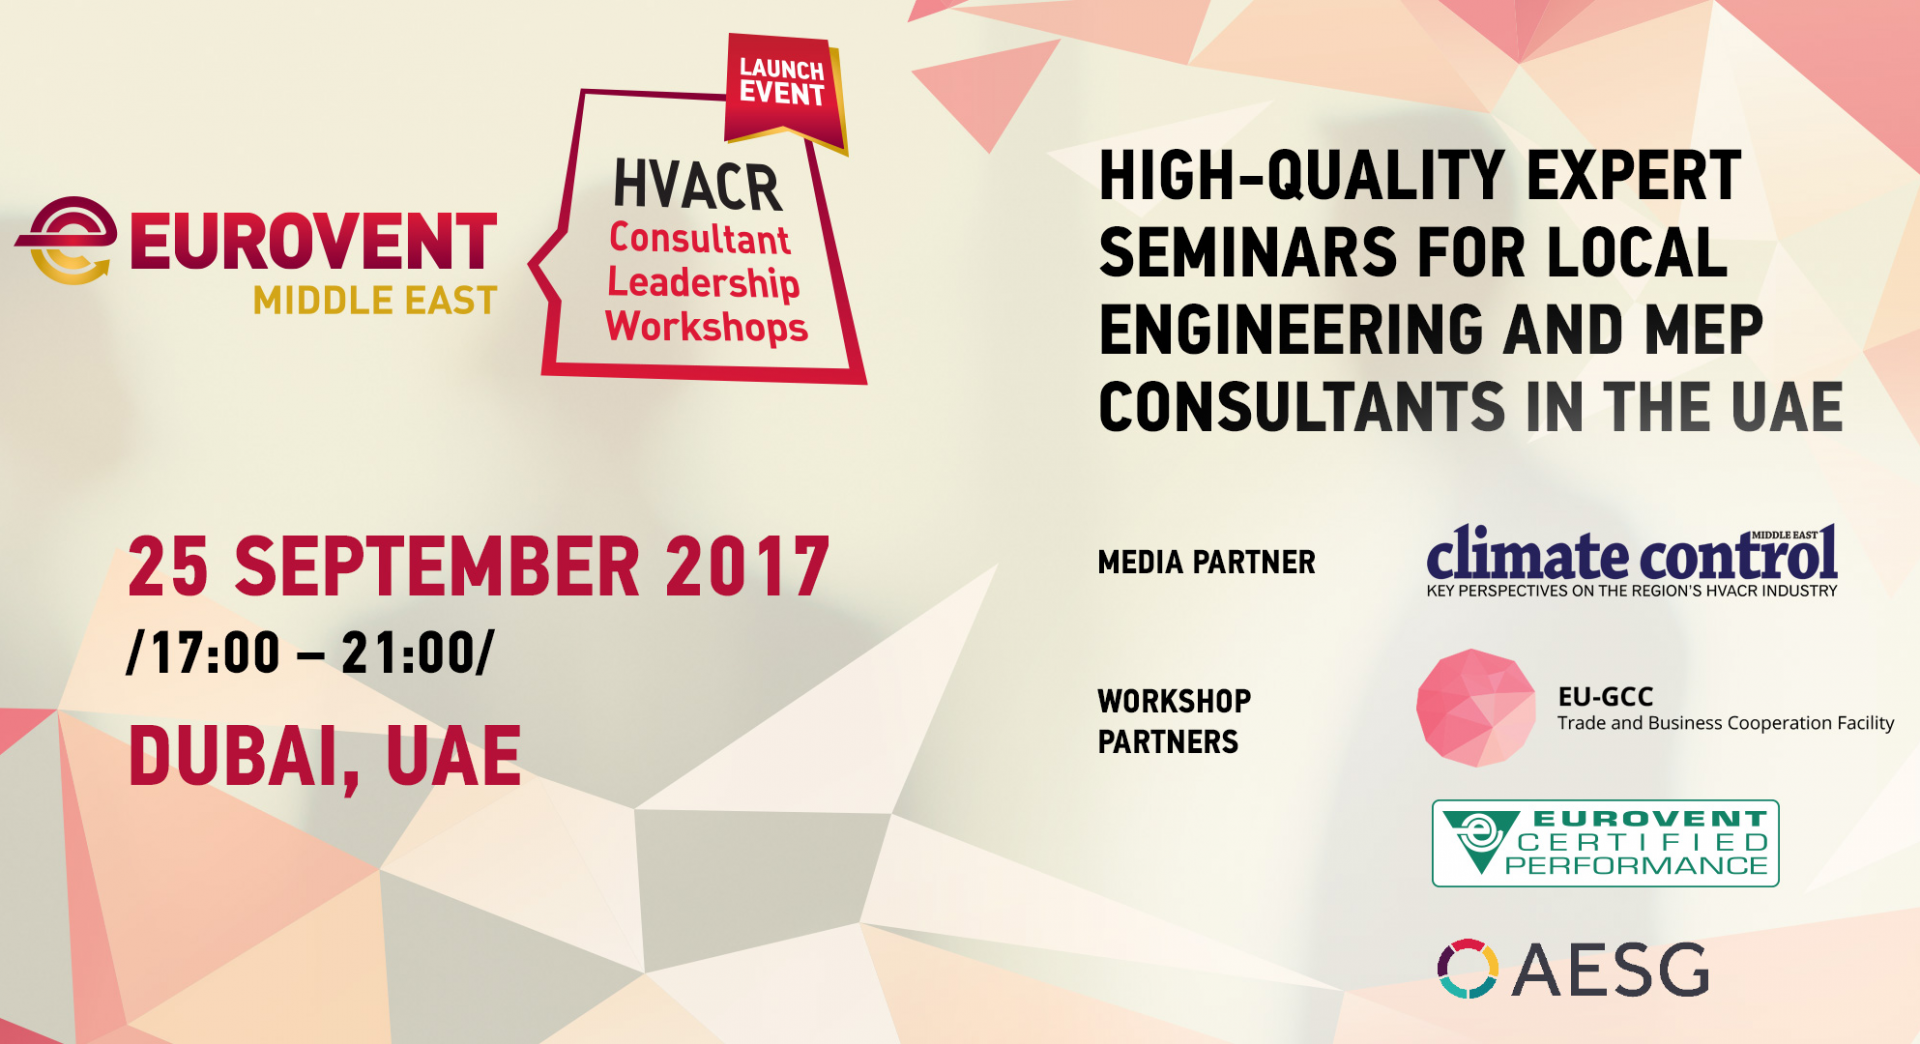 2017 - Consultant workshops by Eurovent Middle East - Launch event